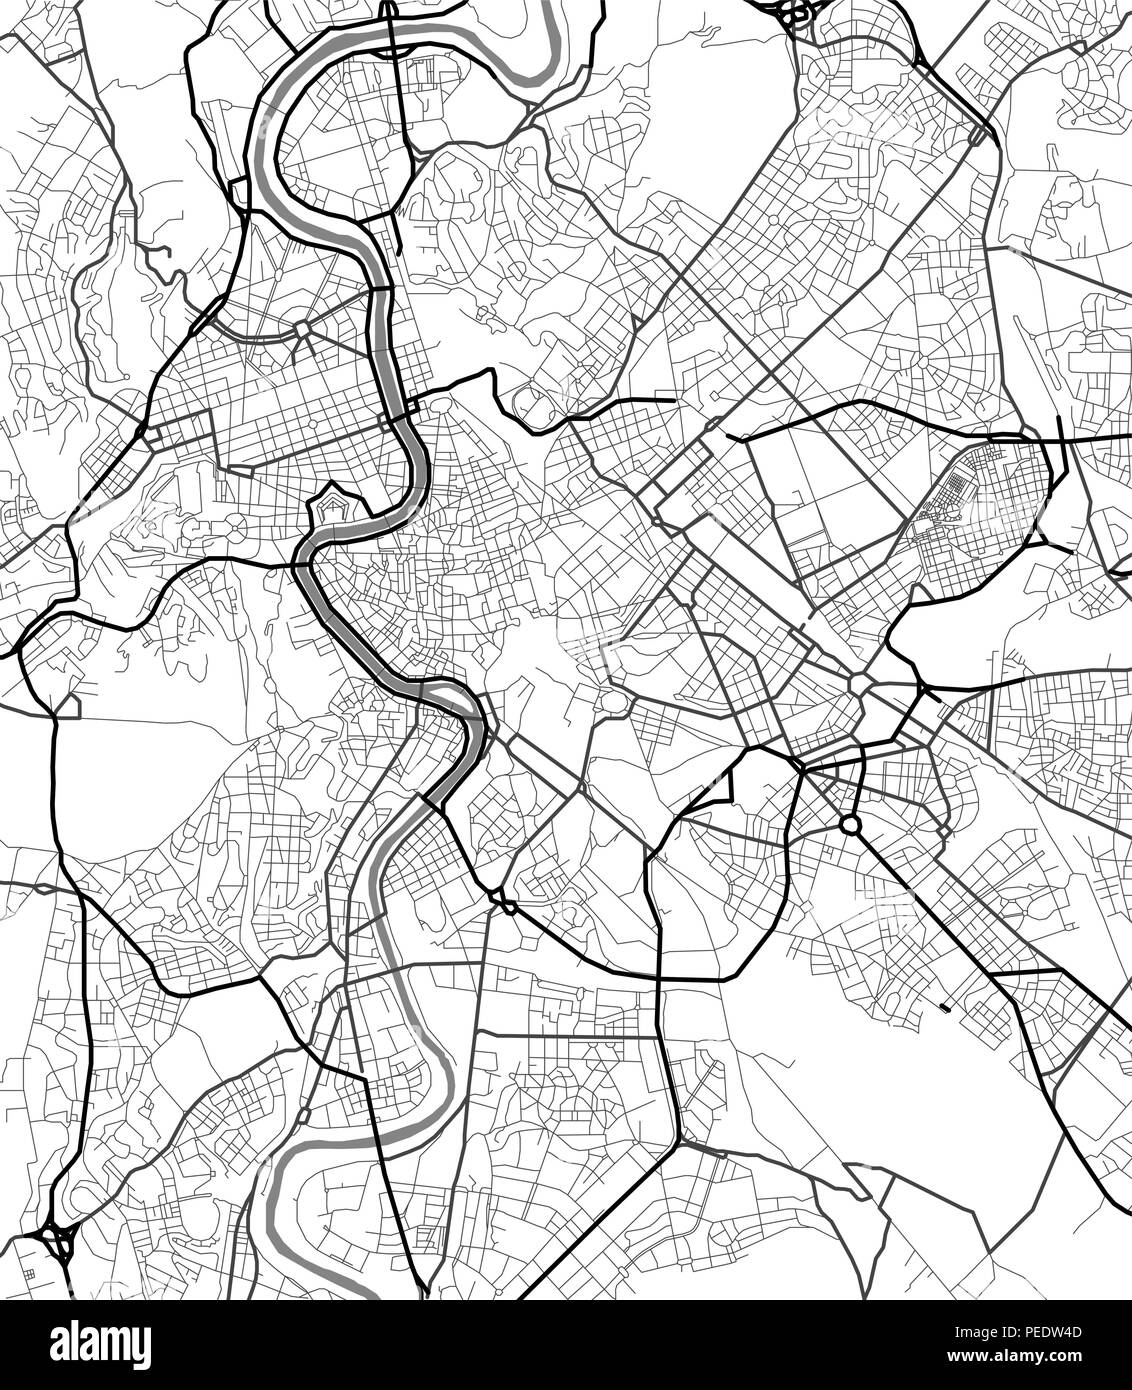 Vector city map of Rome in black and white Stock Vector Art ... on hand drawn city map, design city map, city center map, dragon city map, graphic city map, imperial city map, new york city road map, photoshop tutorial city map, art city map, hudson city map, tech city map, custom city map, mega city map, eagle city map,